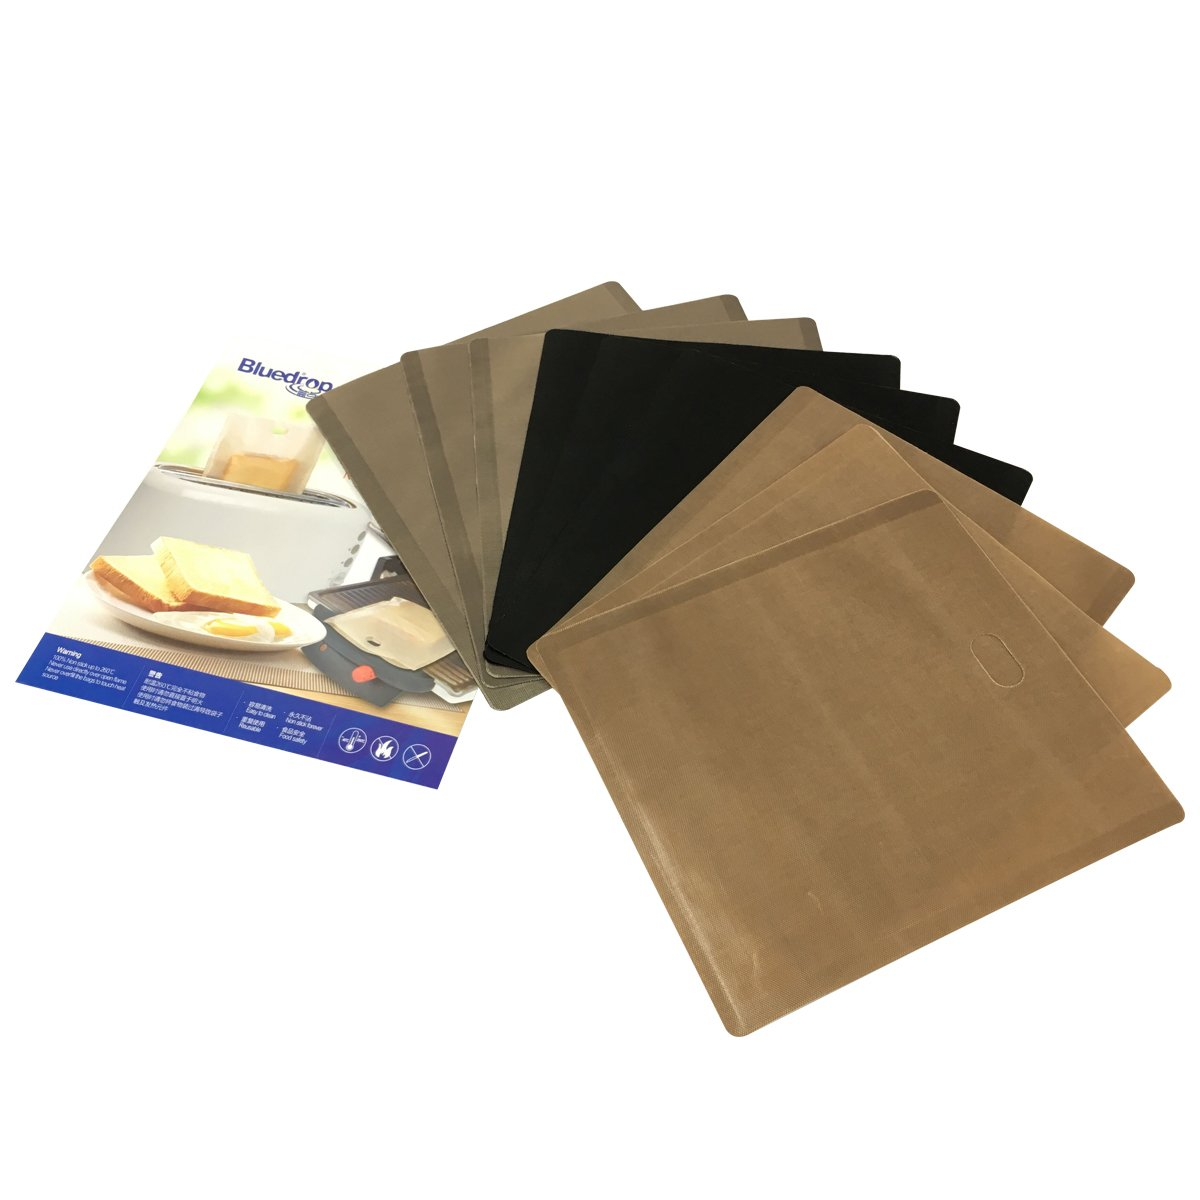 Bluedrop Toaster Bags Reusable Sandwich Bags For Grill Cheese Bread Slice Toast Baking Pockets 9-Pack 2 Colors